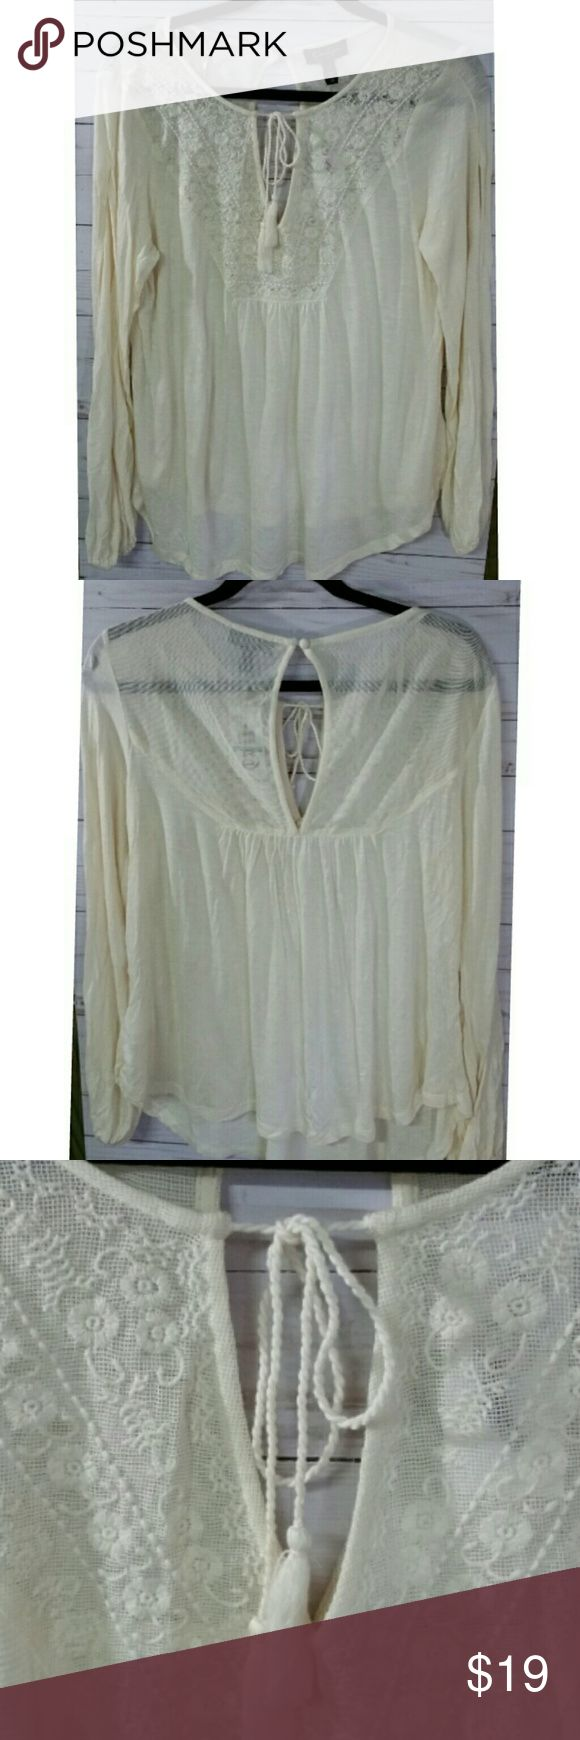 Jessica Simpson cream long sleeve  top Sheer cream material on bottom, Lace like at top Tie at front of neck, keyhole at back 28 shoulder to.hem in front/ 24 back 18.pit to pit 24 sleeve, from shoulder to wris All measurements are approximate   I offer a bundle discount check out my other listings   Thanks for looking! Tops